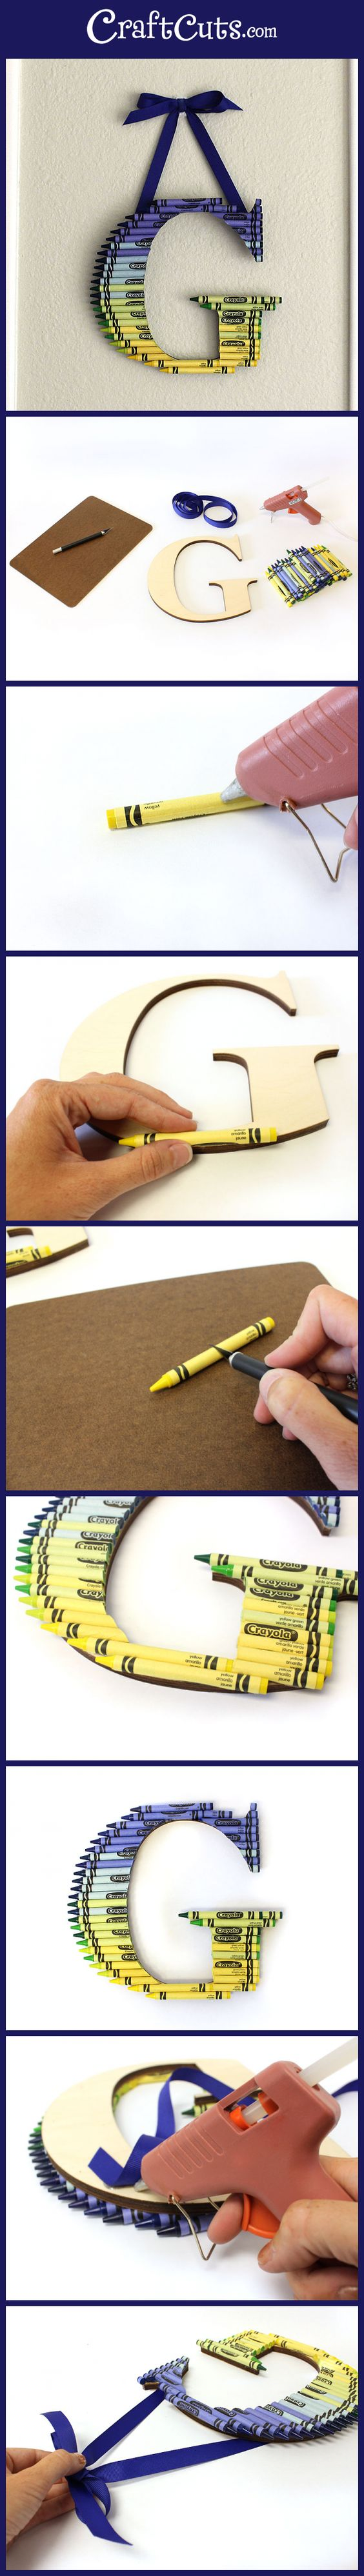 How to Create an Ombre Crayon Letter | CraftCuts.com